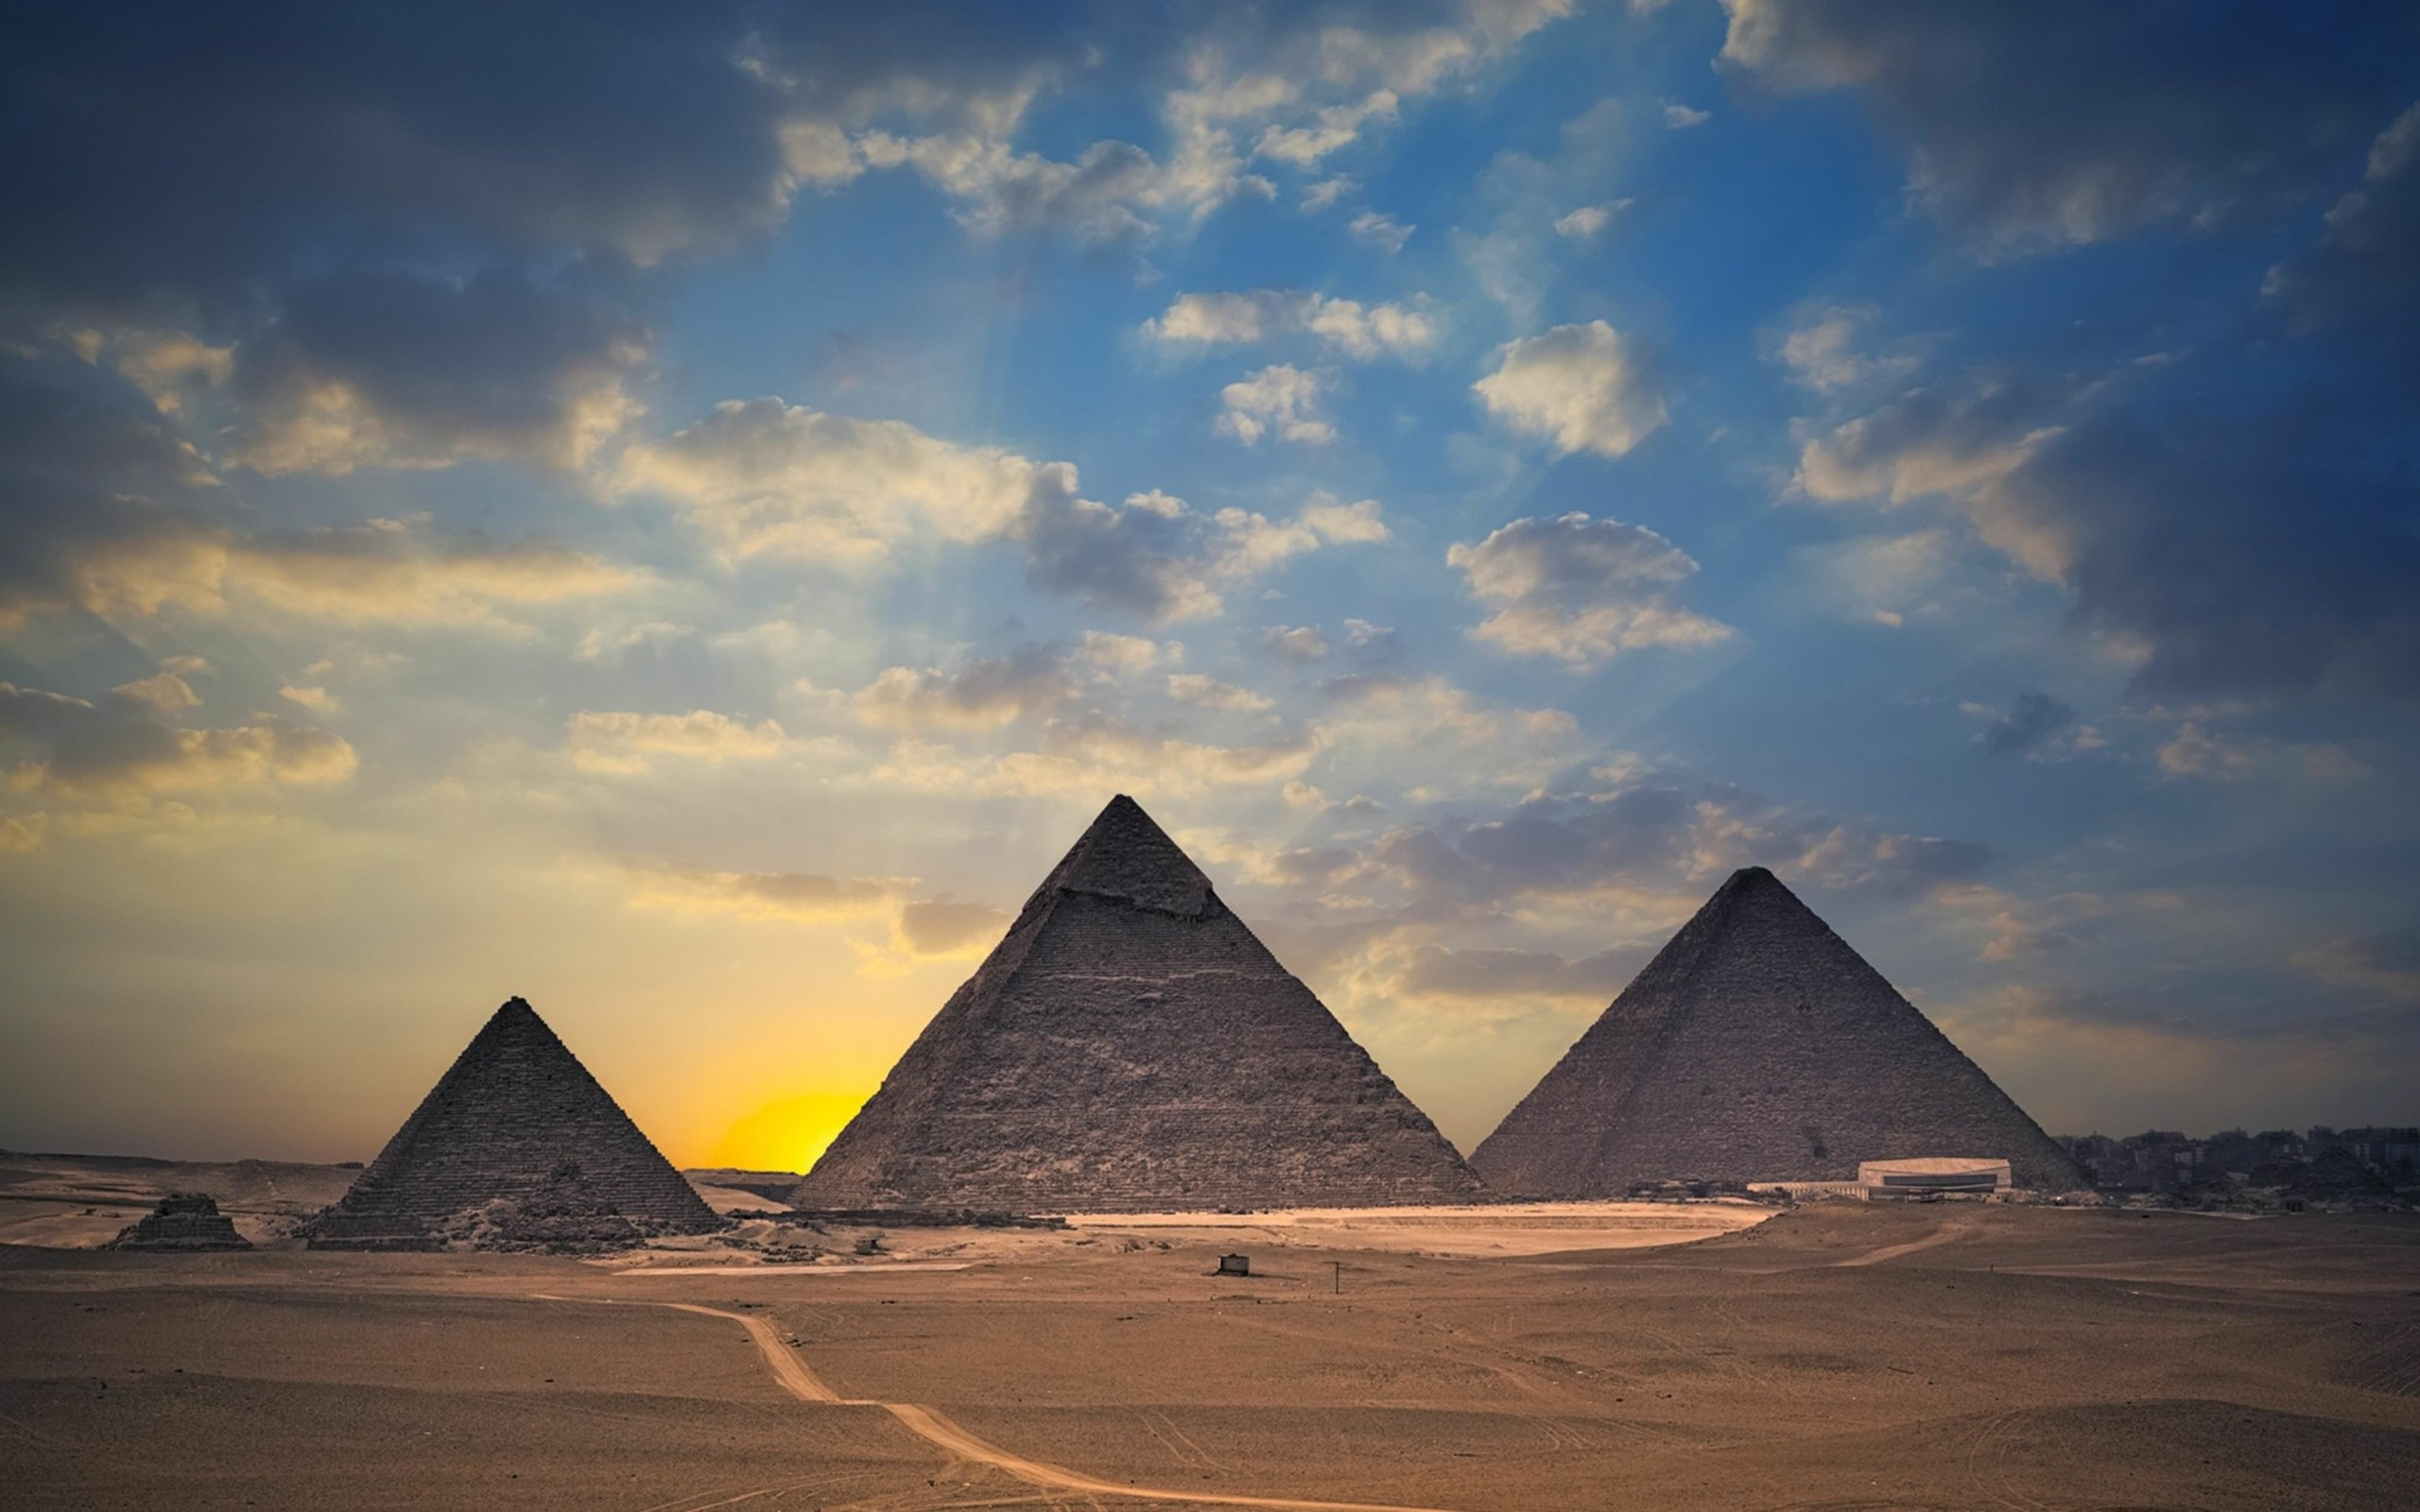 The Great Pyramids of Giza Wallpaper for Desktop 2560x1600